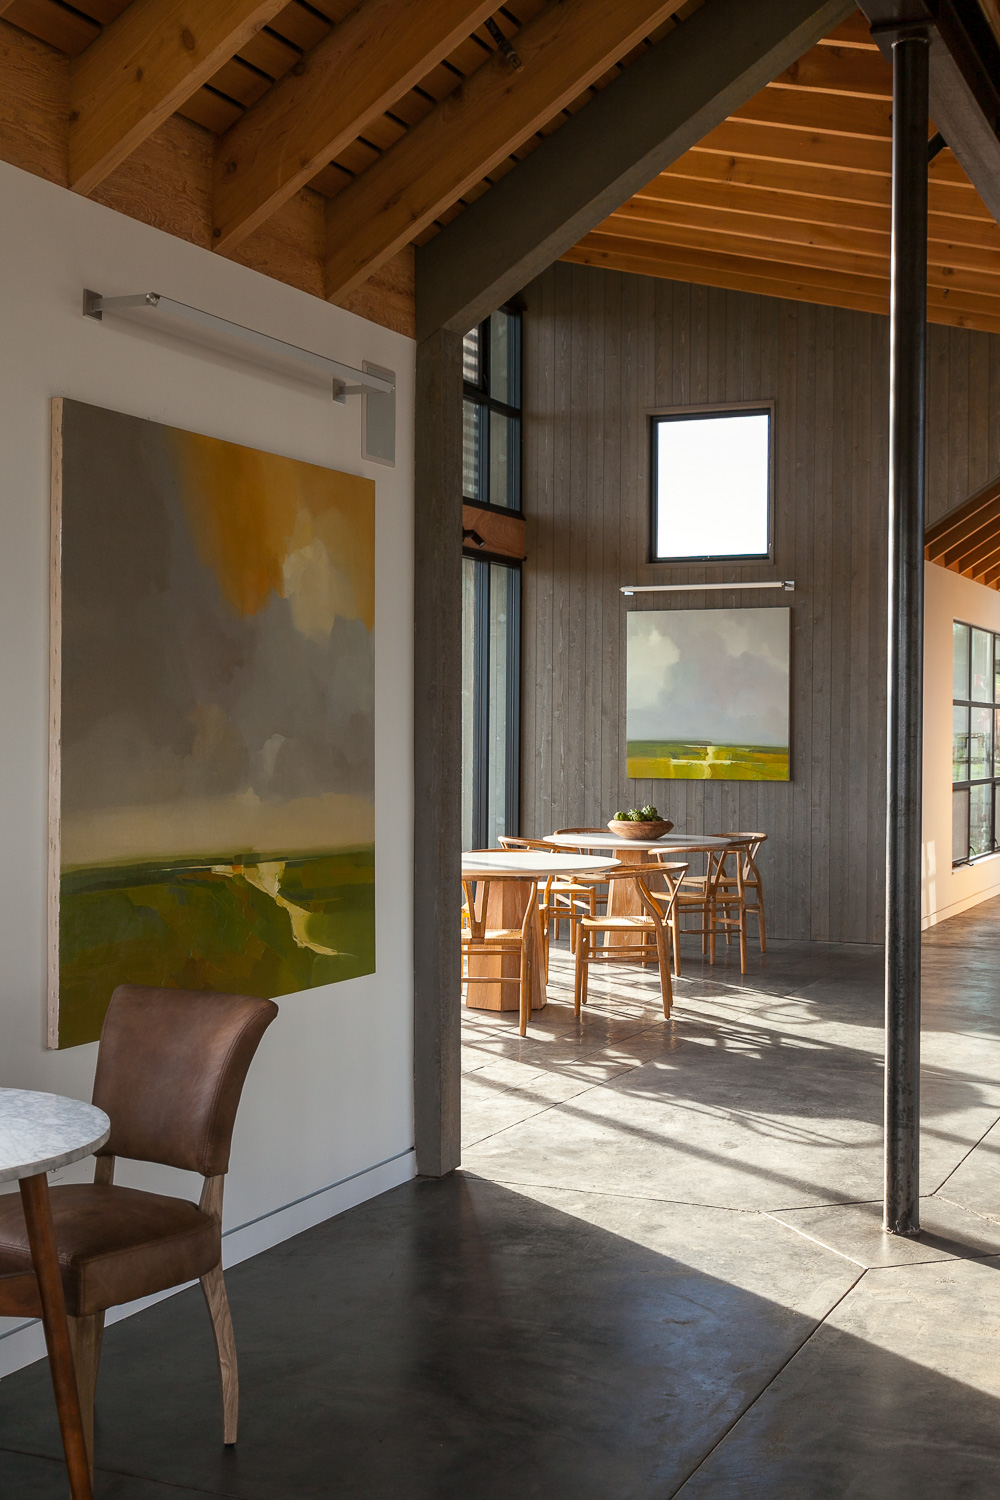 The artwork in the MacRostie Winery estate house tasting room appear almost to be additional windows.